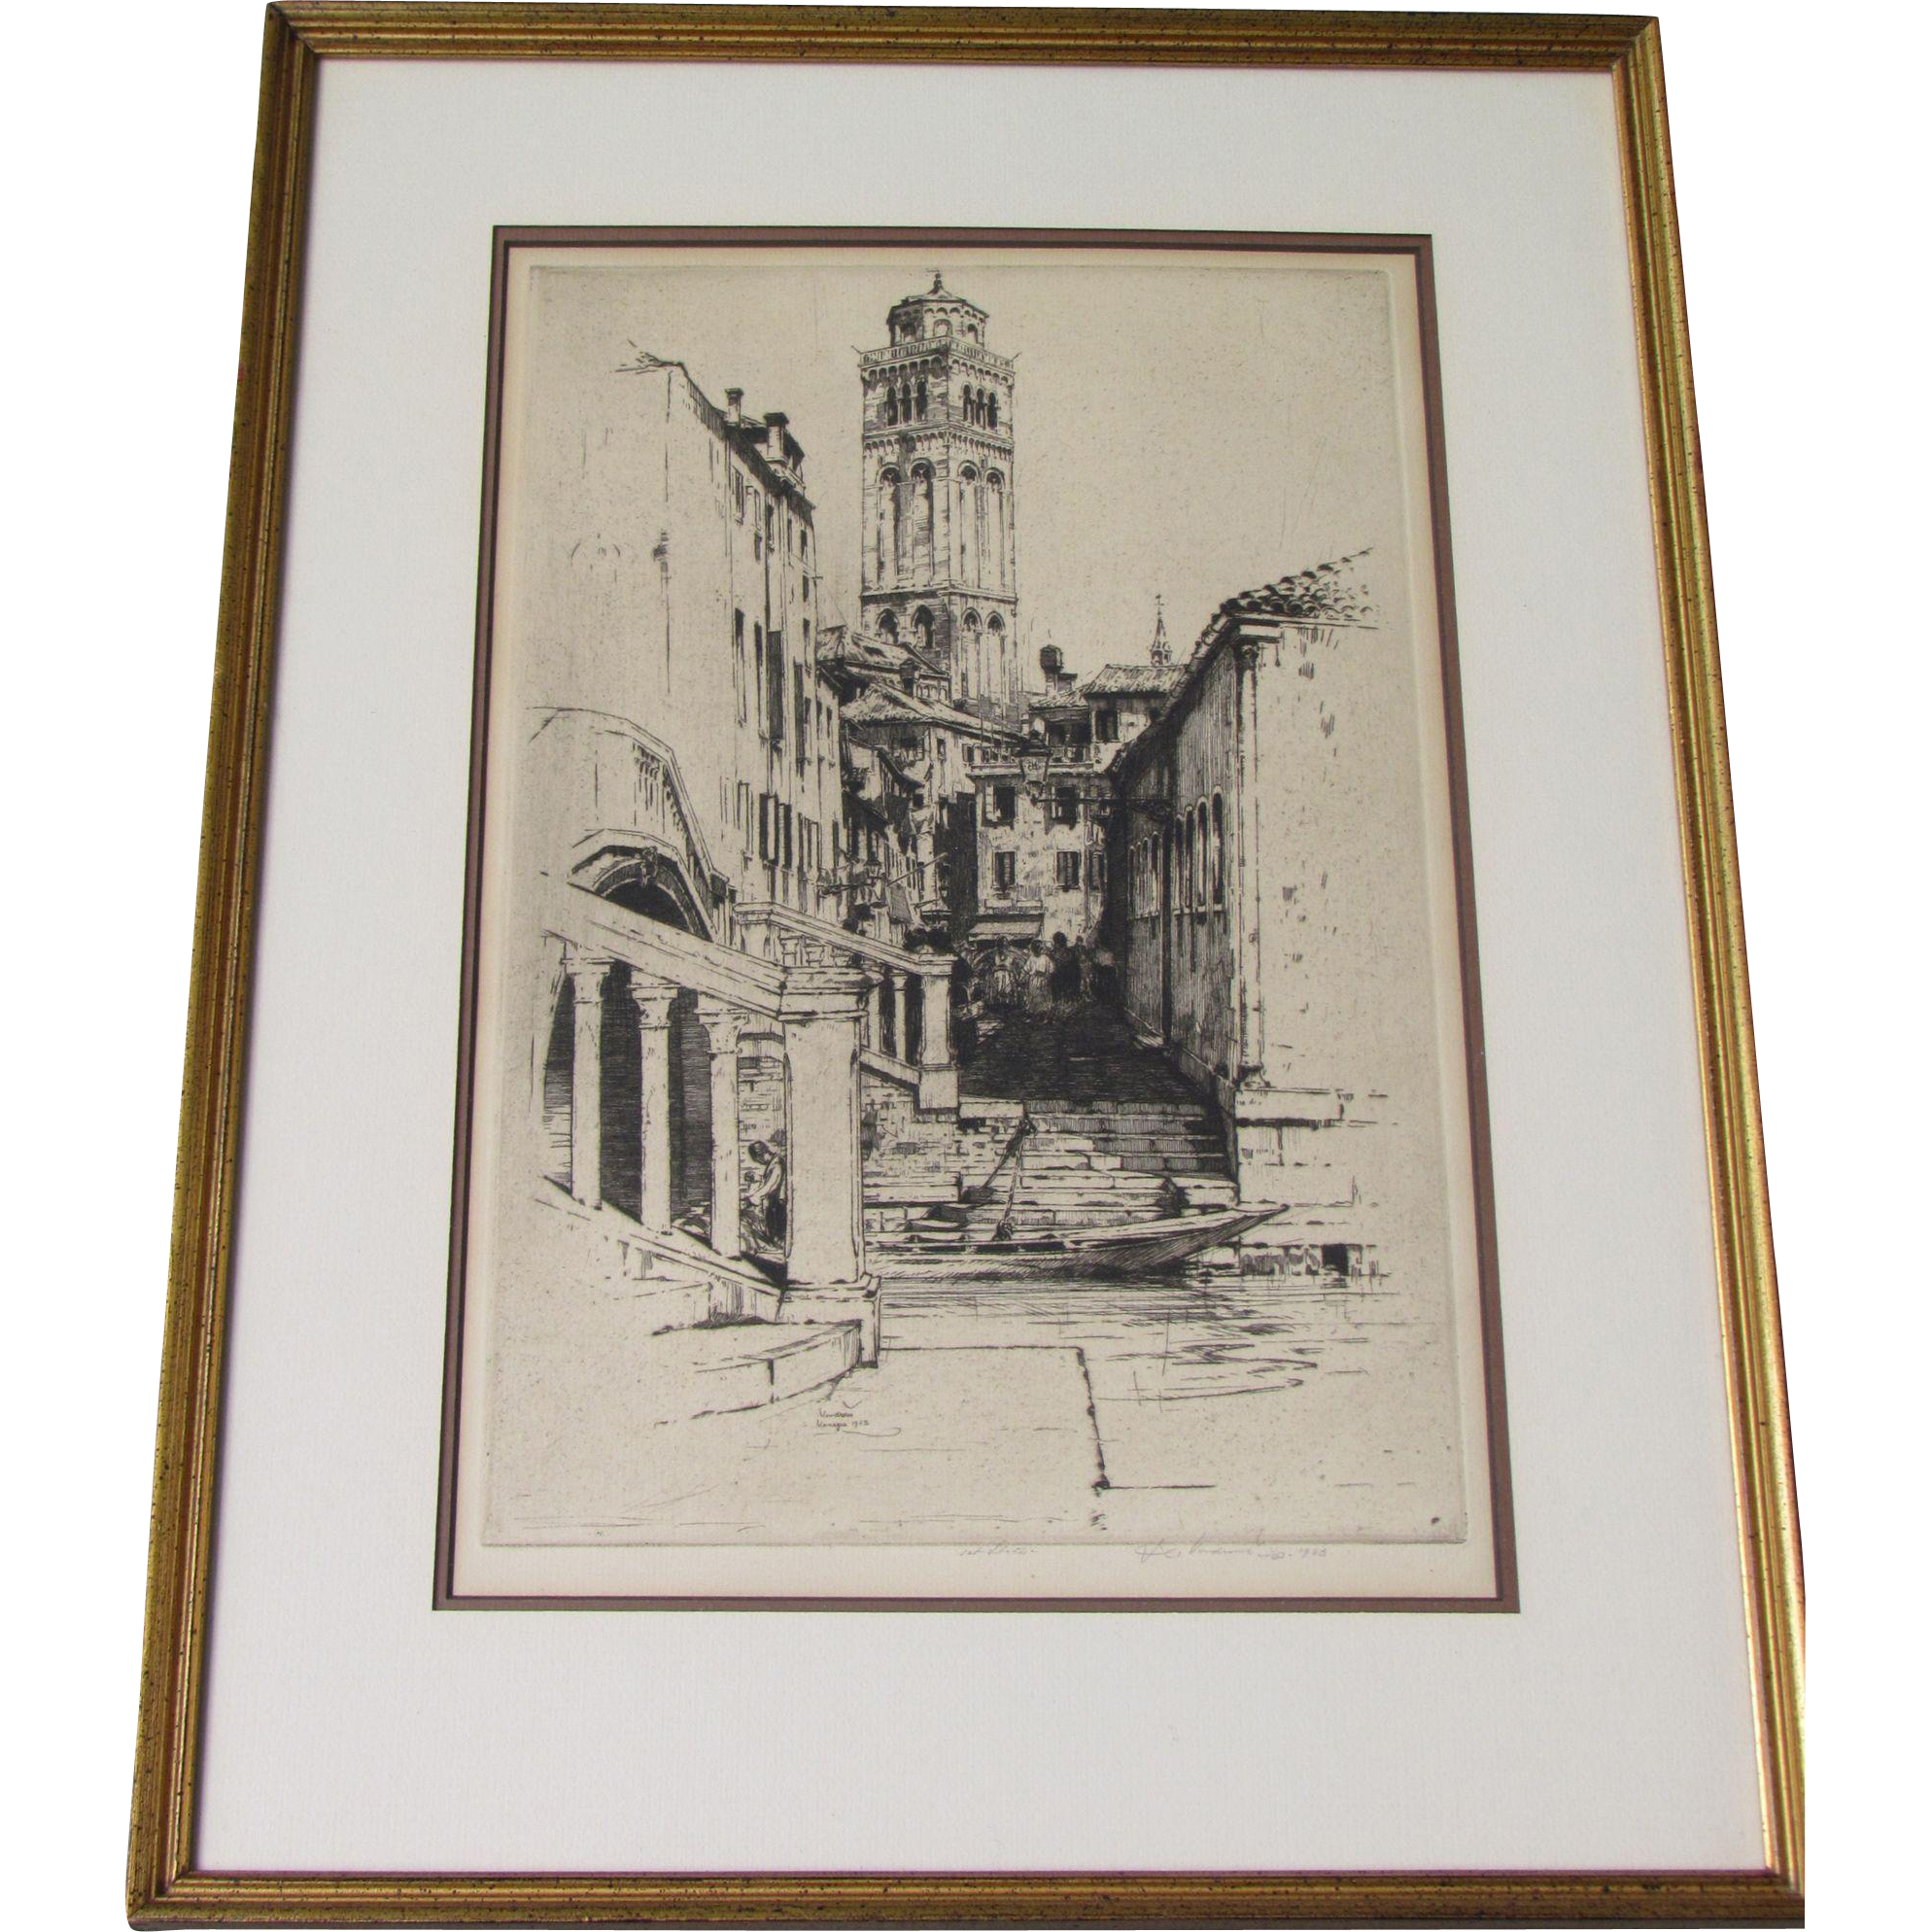 Jan (John ) C. VONDROUS pencil signed etching of Forari Italy